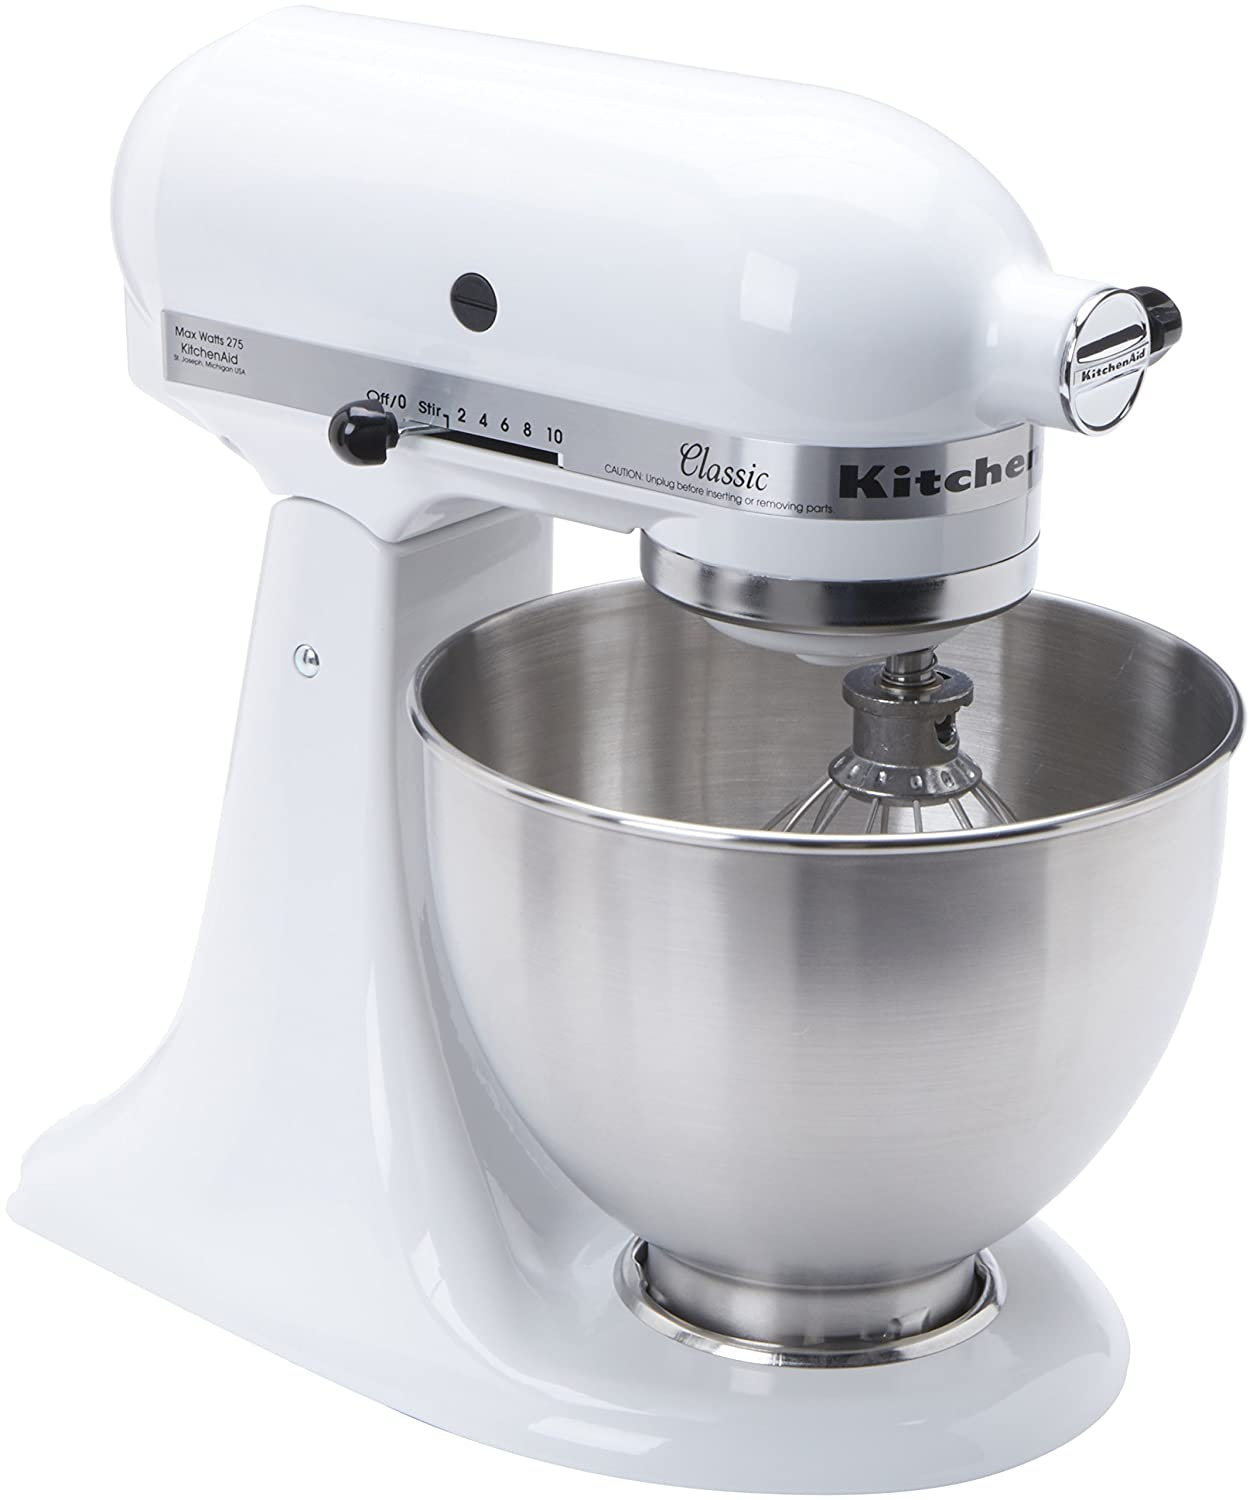 Kitchen aid heavy duty - Amazon Com Kitchenaid Classic K45sswh 250 Watt 4 1 2 Quart Tilt Head Stand Mixer White Electric Stand Mixers Kitchen Dining